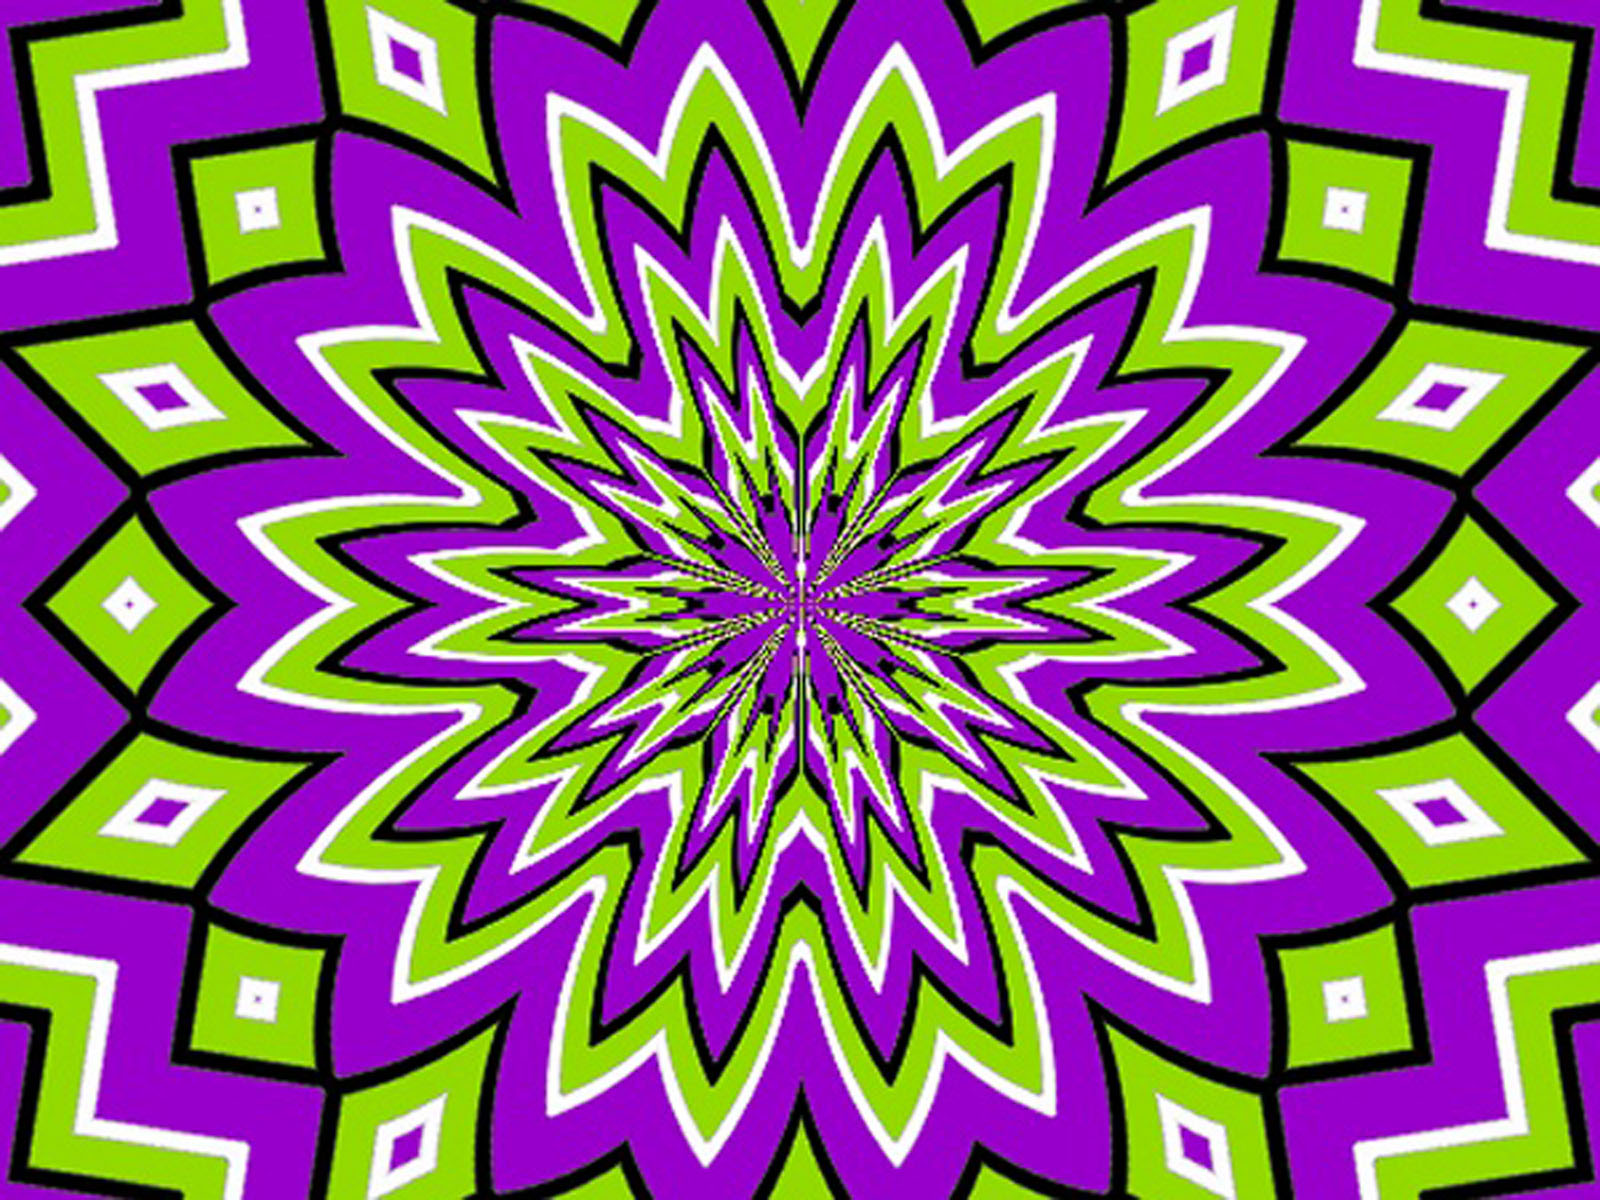 Download Free 3d Wallpapers For Windows 8 Wallpapers Optical Illusion